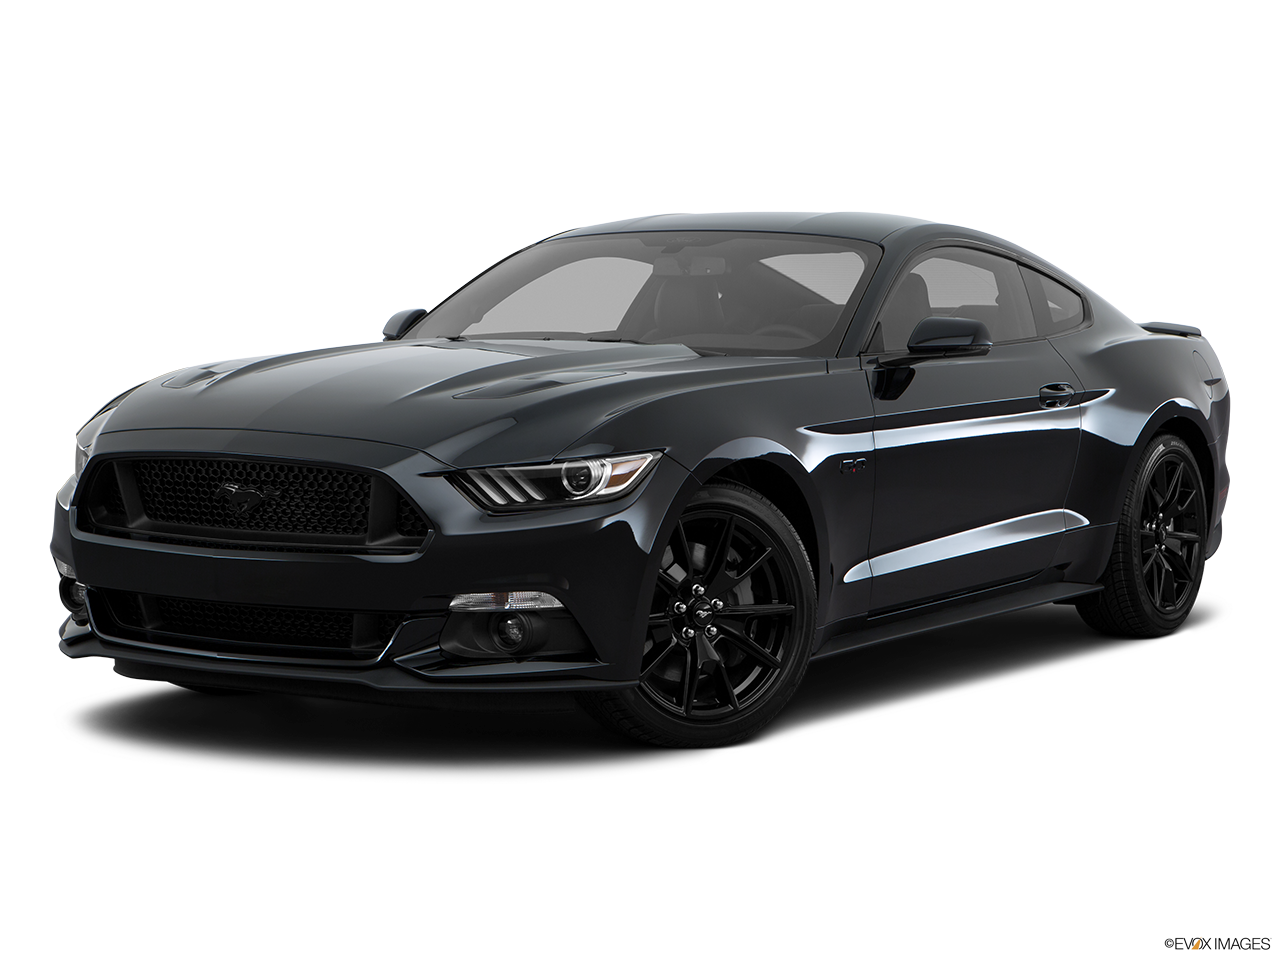 Test Drive A 2017 Ford Mustang at Galpin Ford in Los Angeles